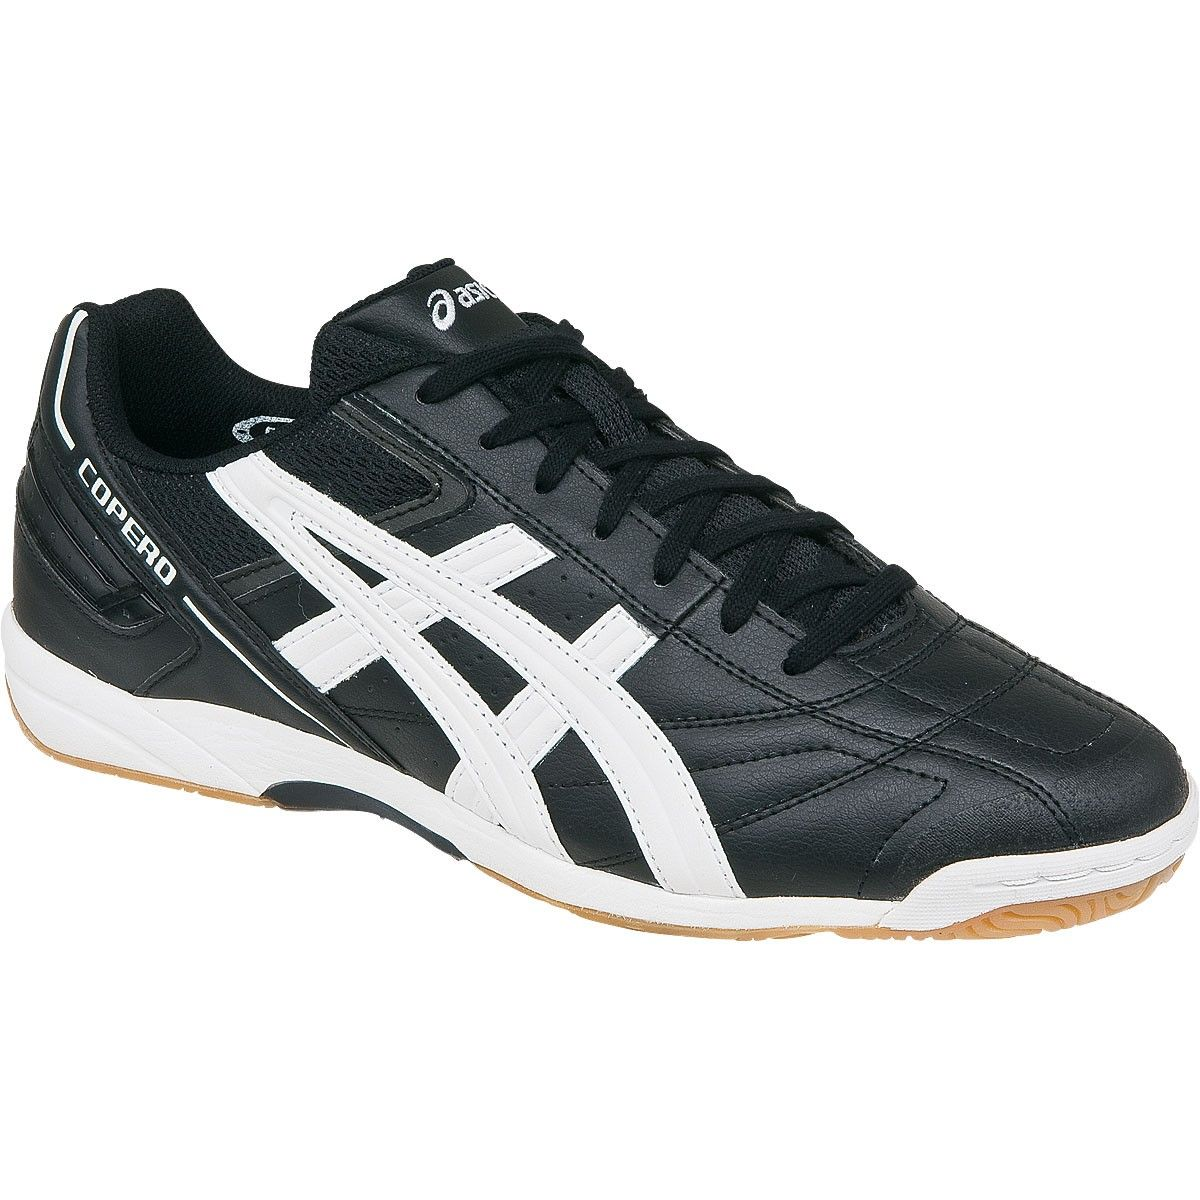 Indoor shoes   Japan,Asics shoes